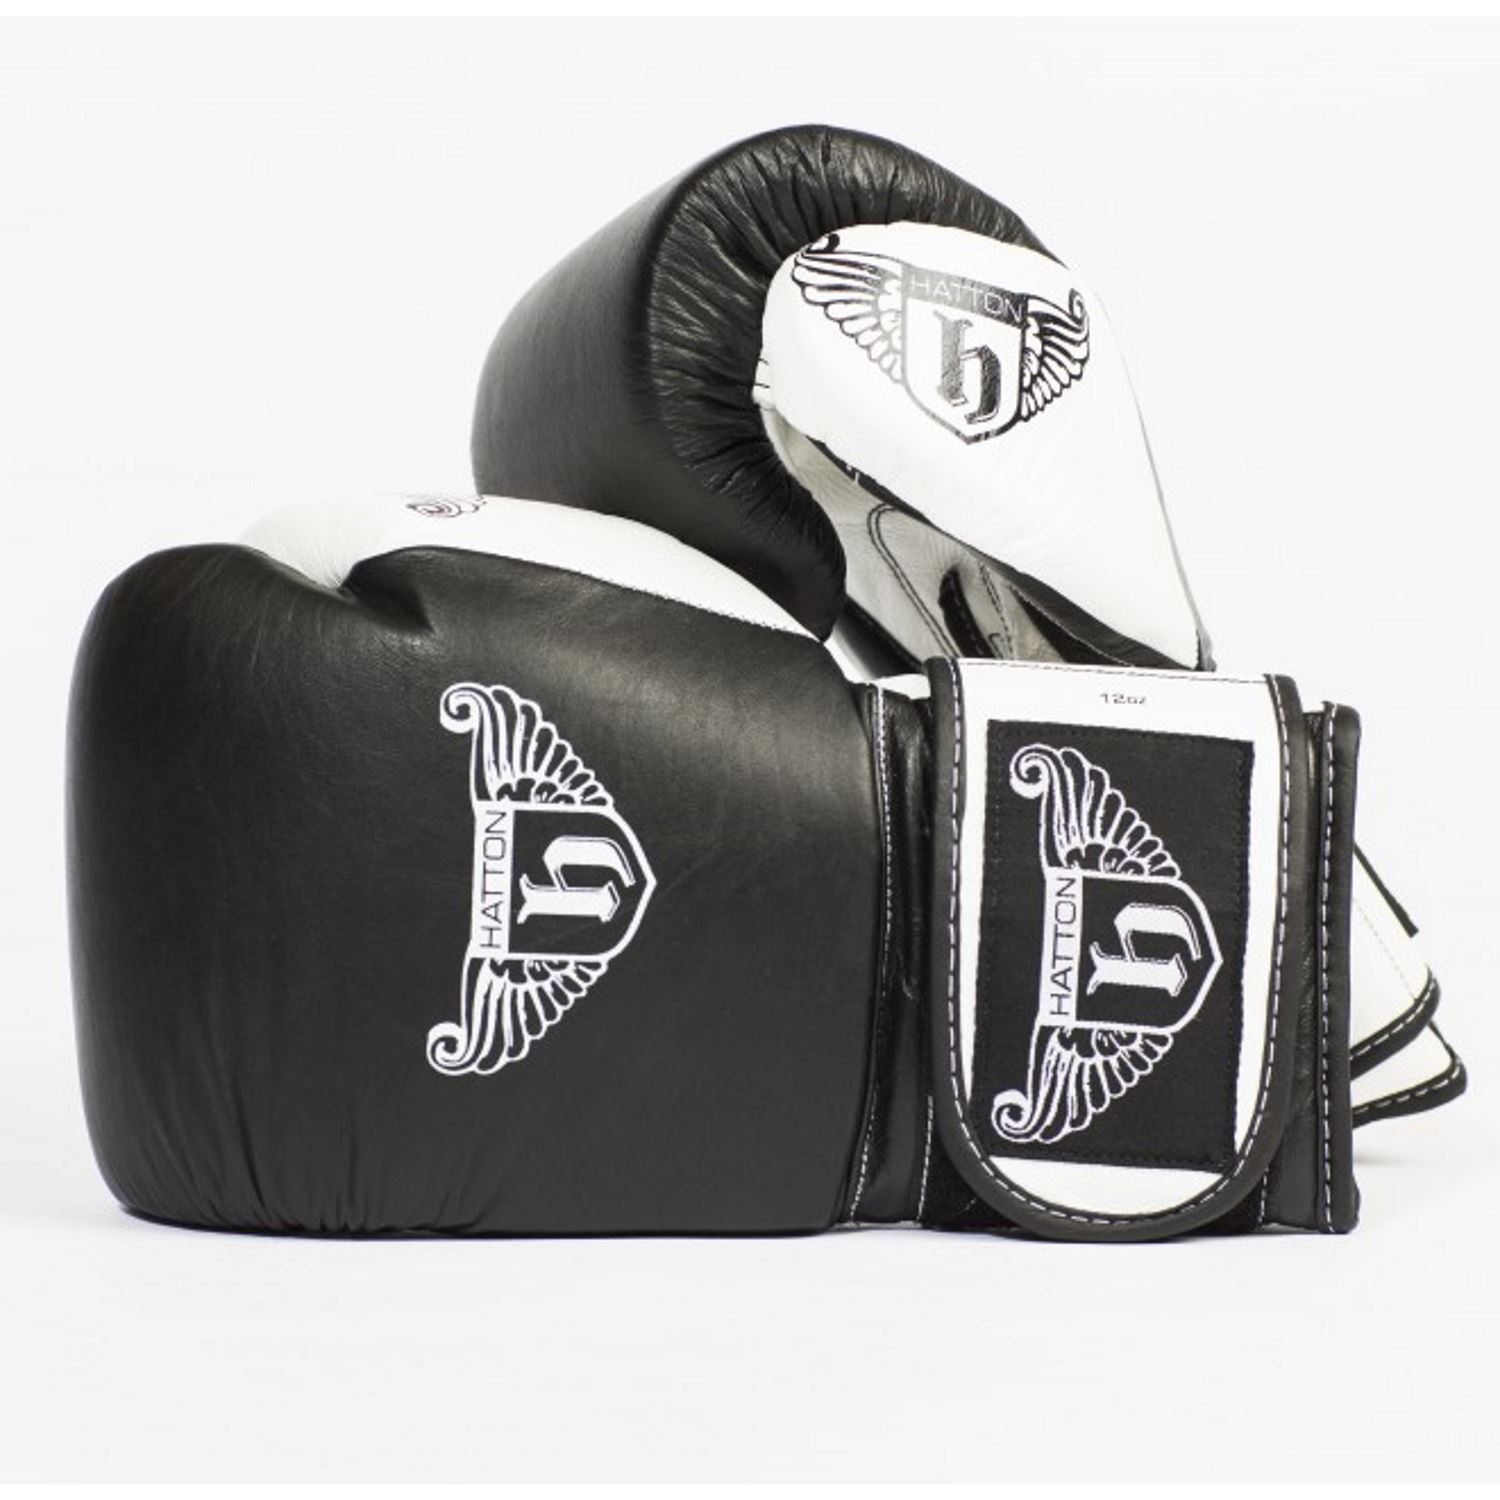 Hatton Pro Sparring Leather Velcro Gloves - 10oz